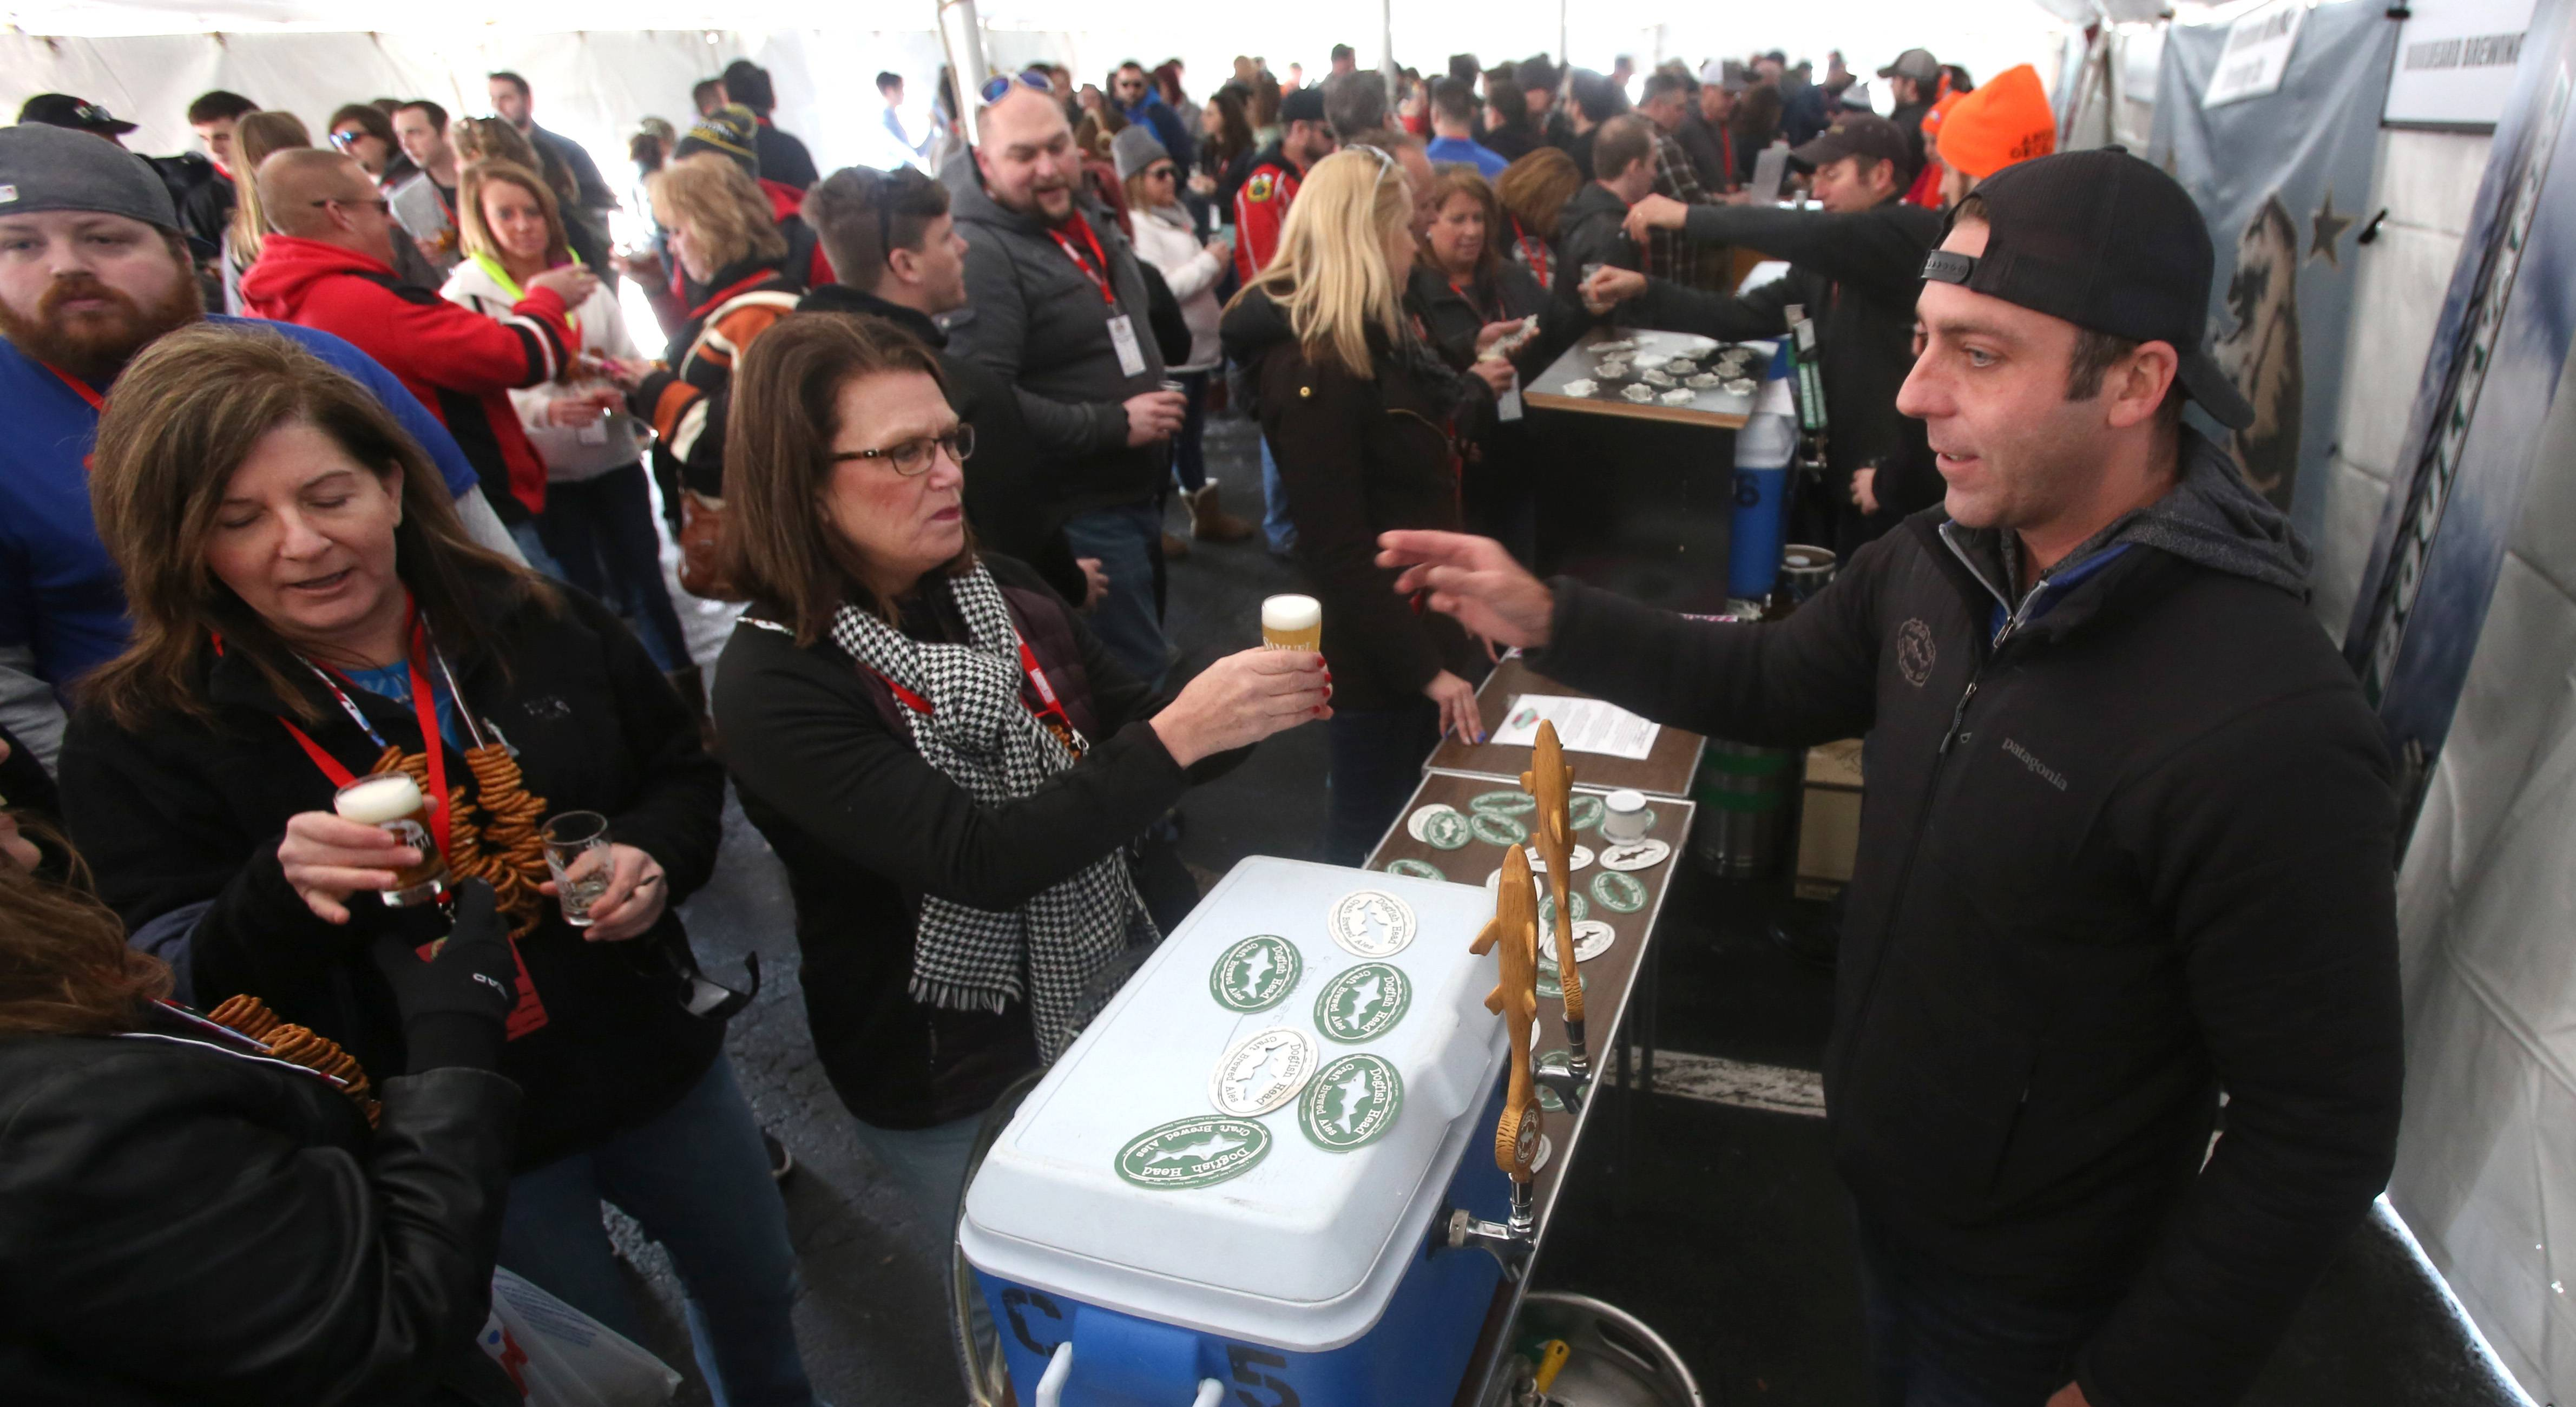 Tim Dunphy pours a sample from the Dogfish Head Brewery, located in Milton, Delaware, during the third annual Naperville Winter Ale Fest at Frontier Park.